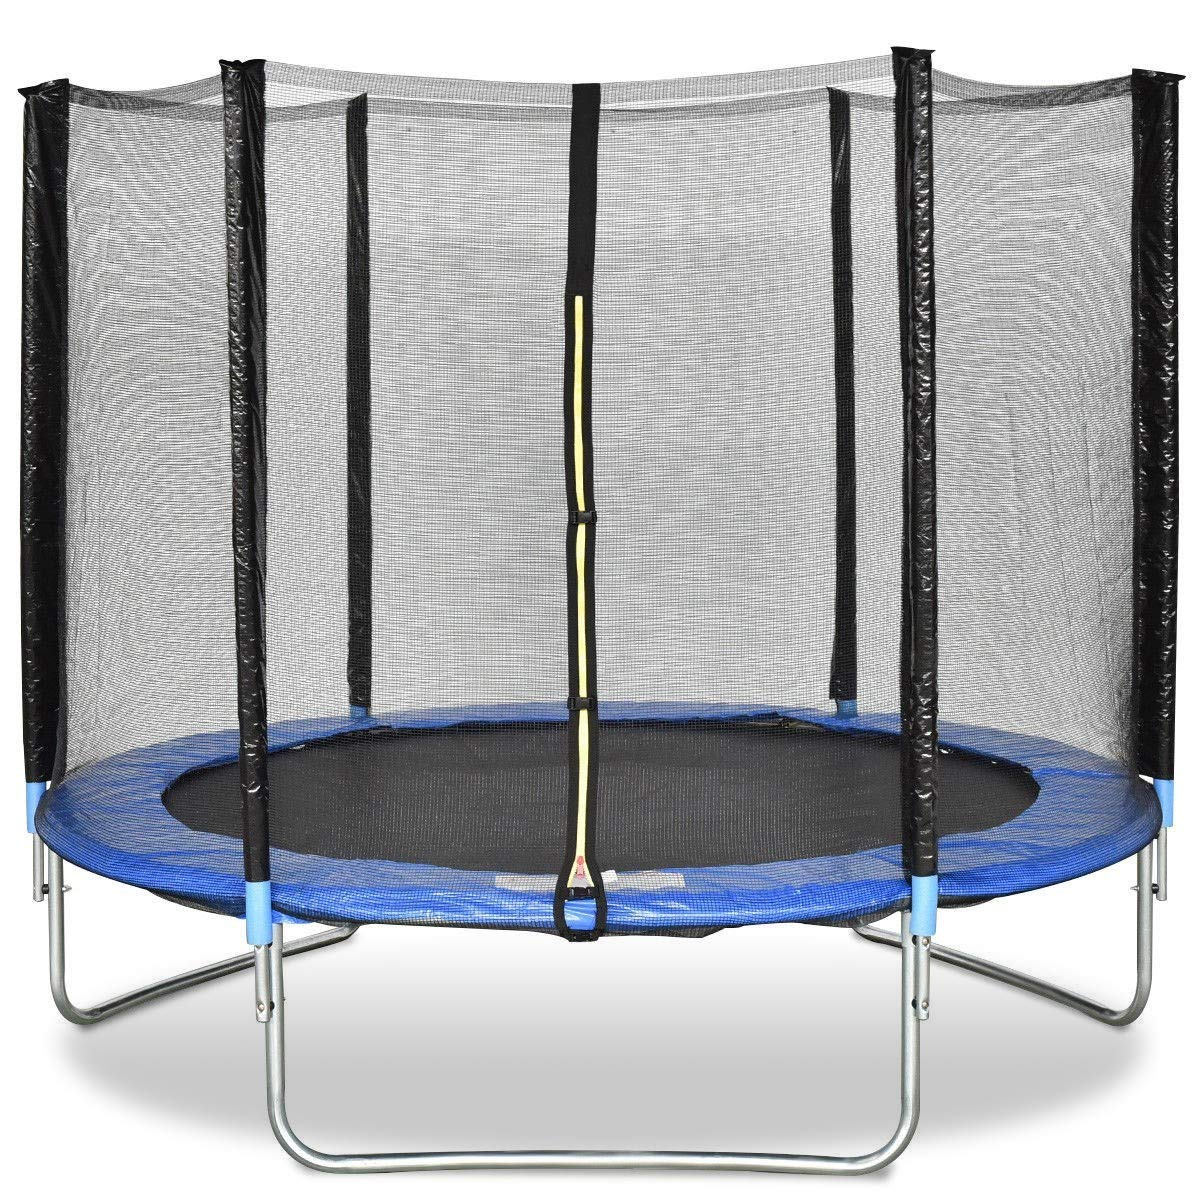 LordBee Unique Design 8 ft Safety Jumping Round Trampoline with Spring Safety Pad Waterproof High Temperatures Safety